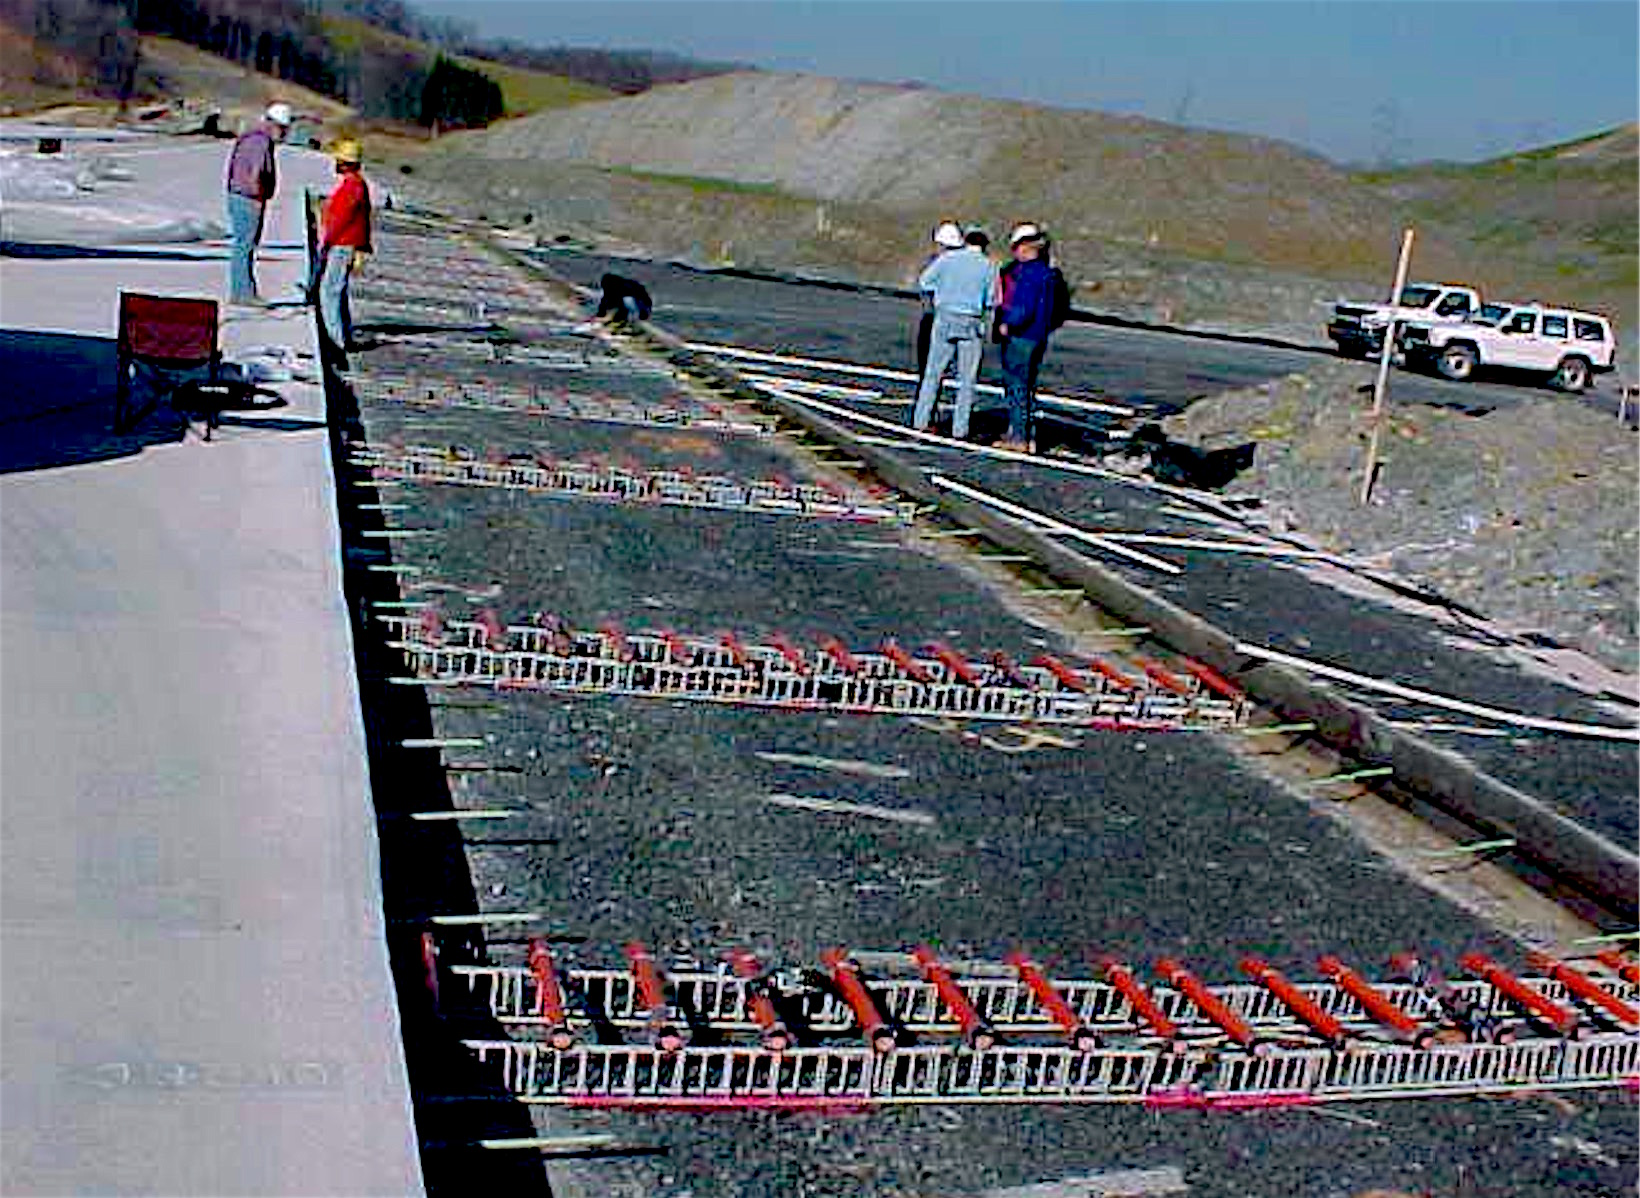 WEBINAR: Dowel Basket Anchoring Methods: Best Practices for Jointed Concrete Pavements